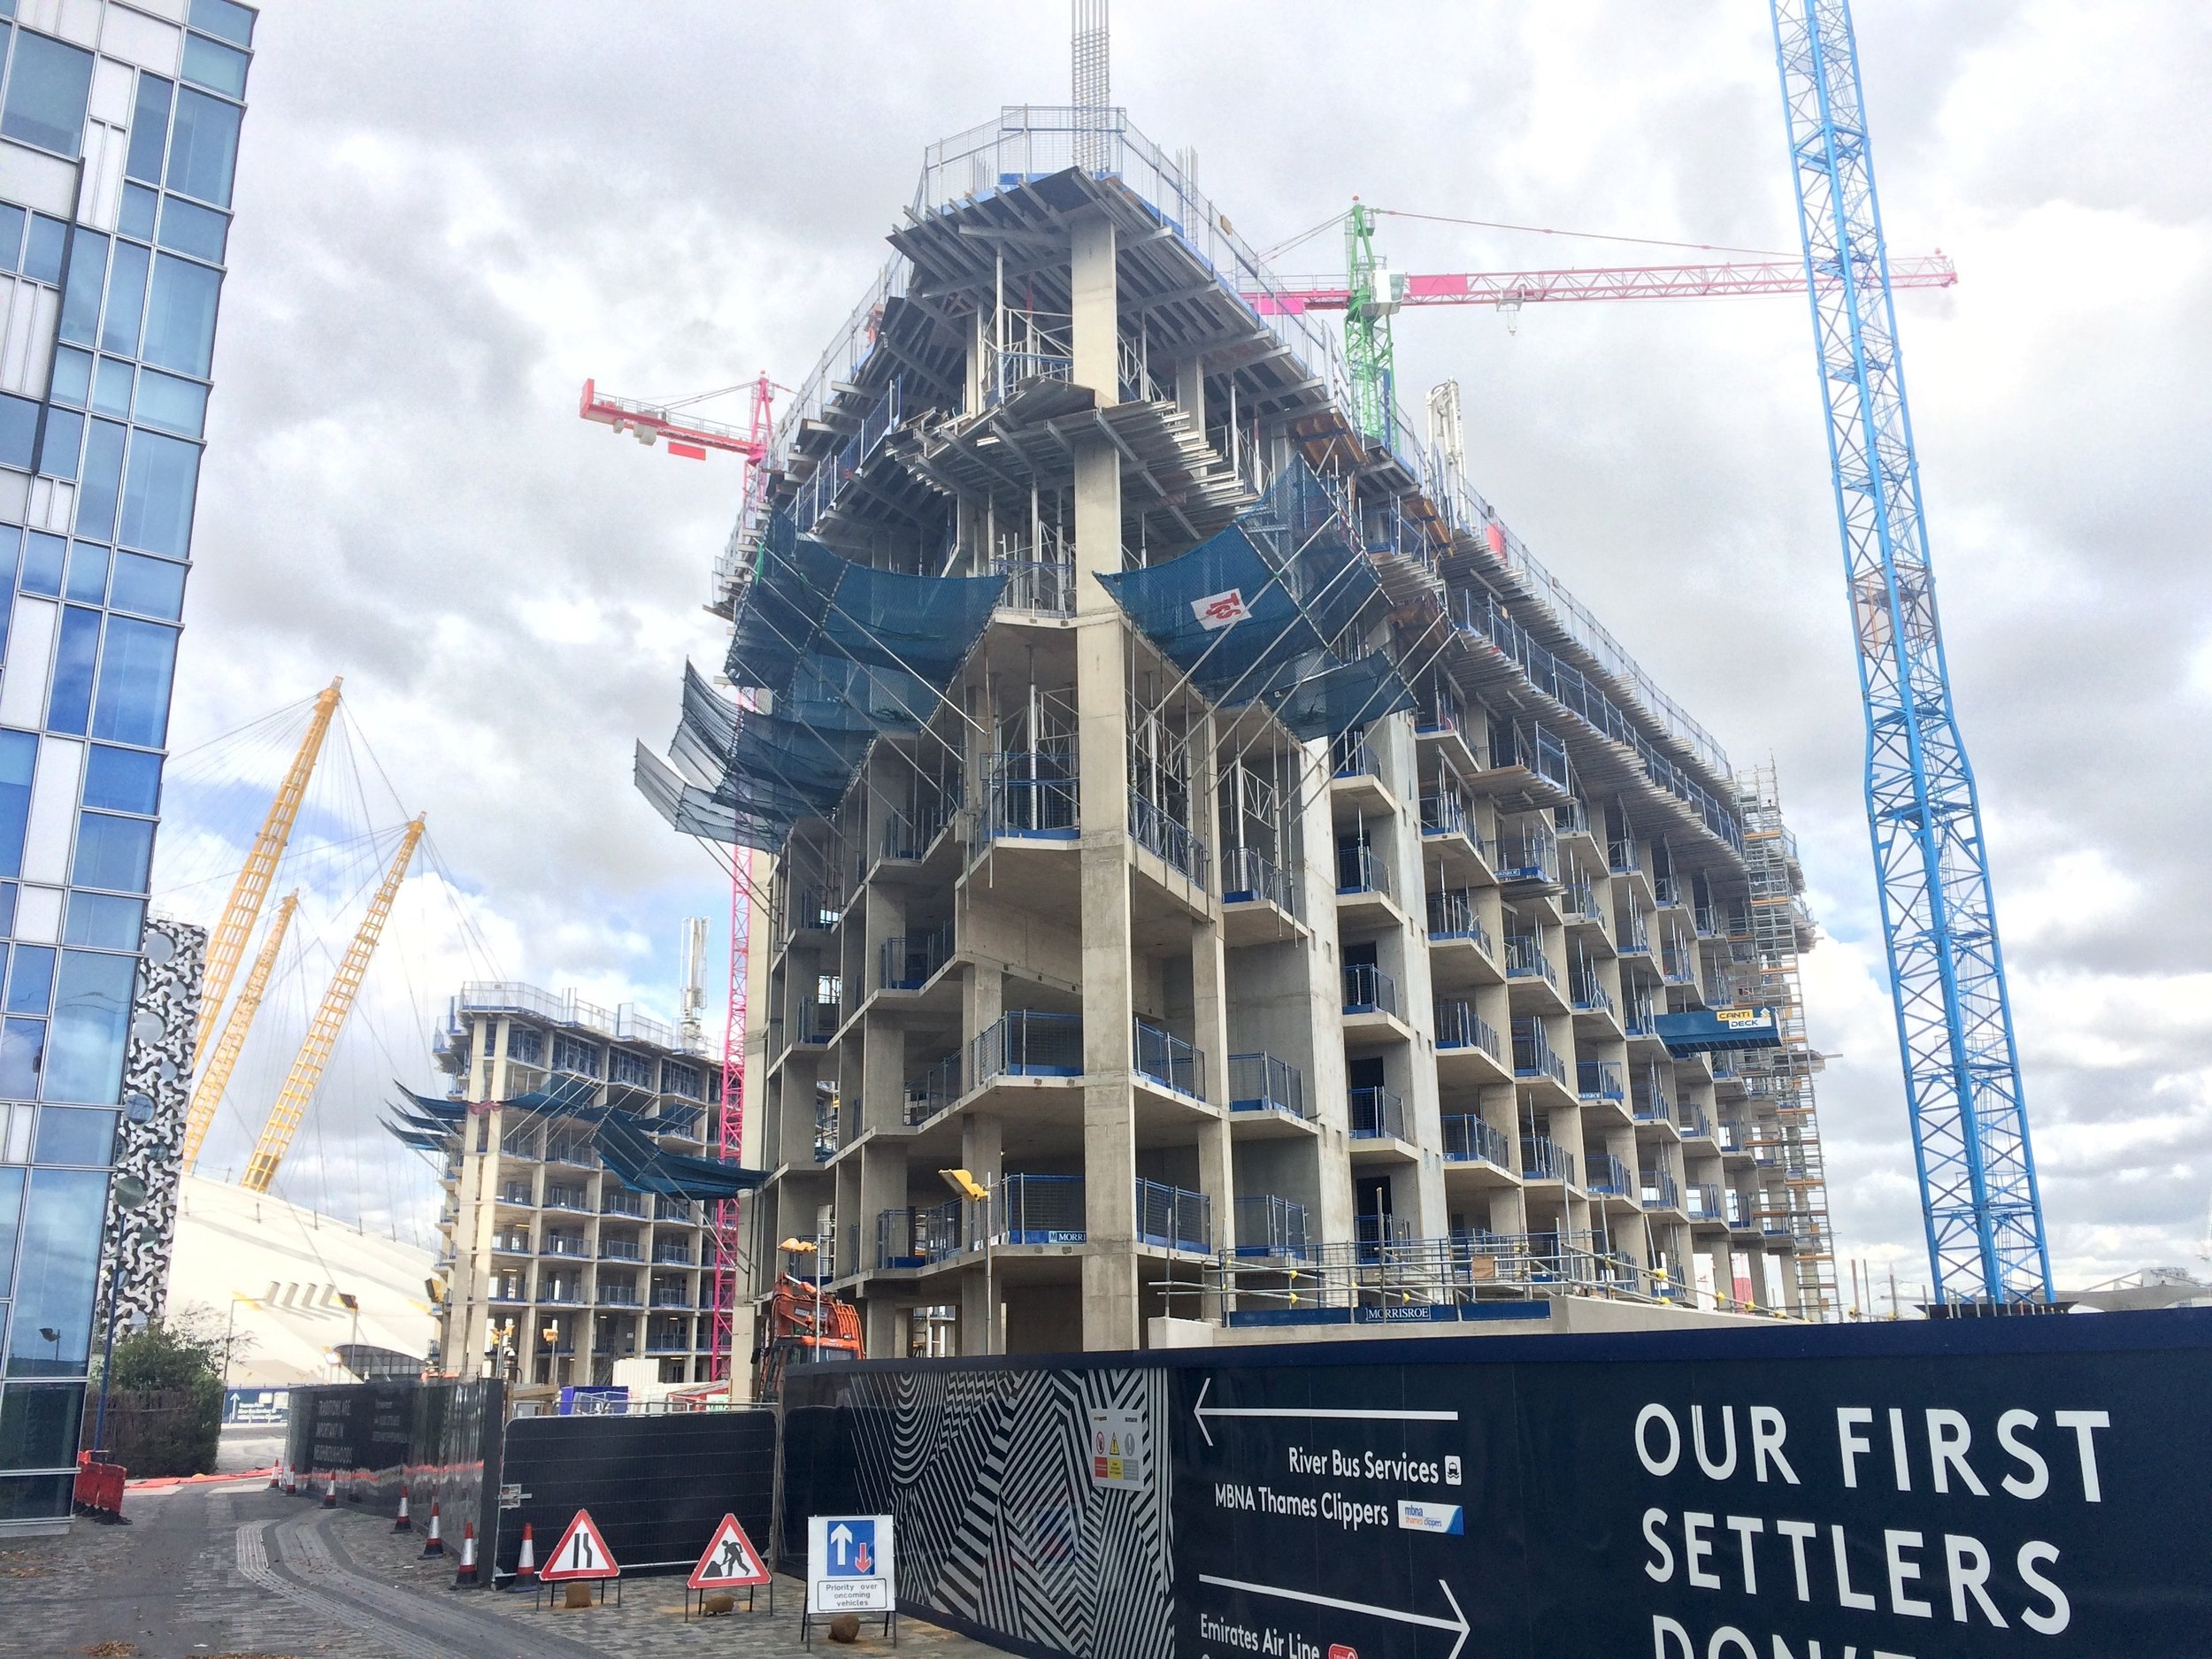 Construction progress - August 2016 [greenpen.london]